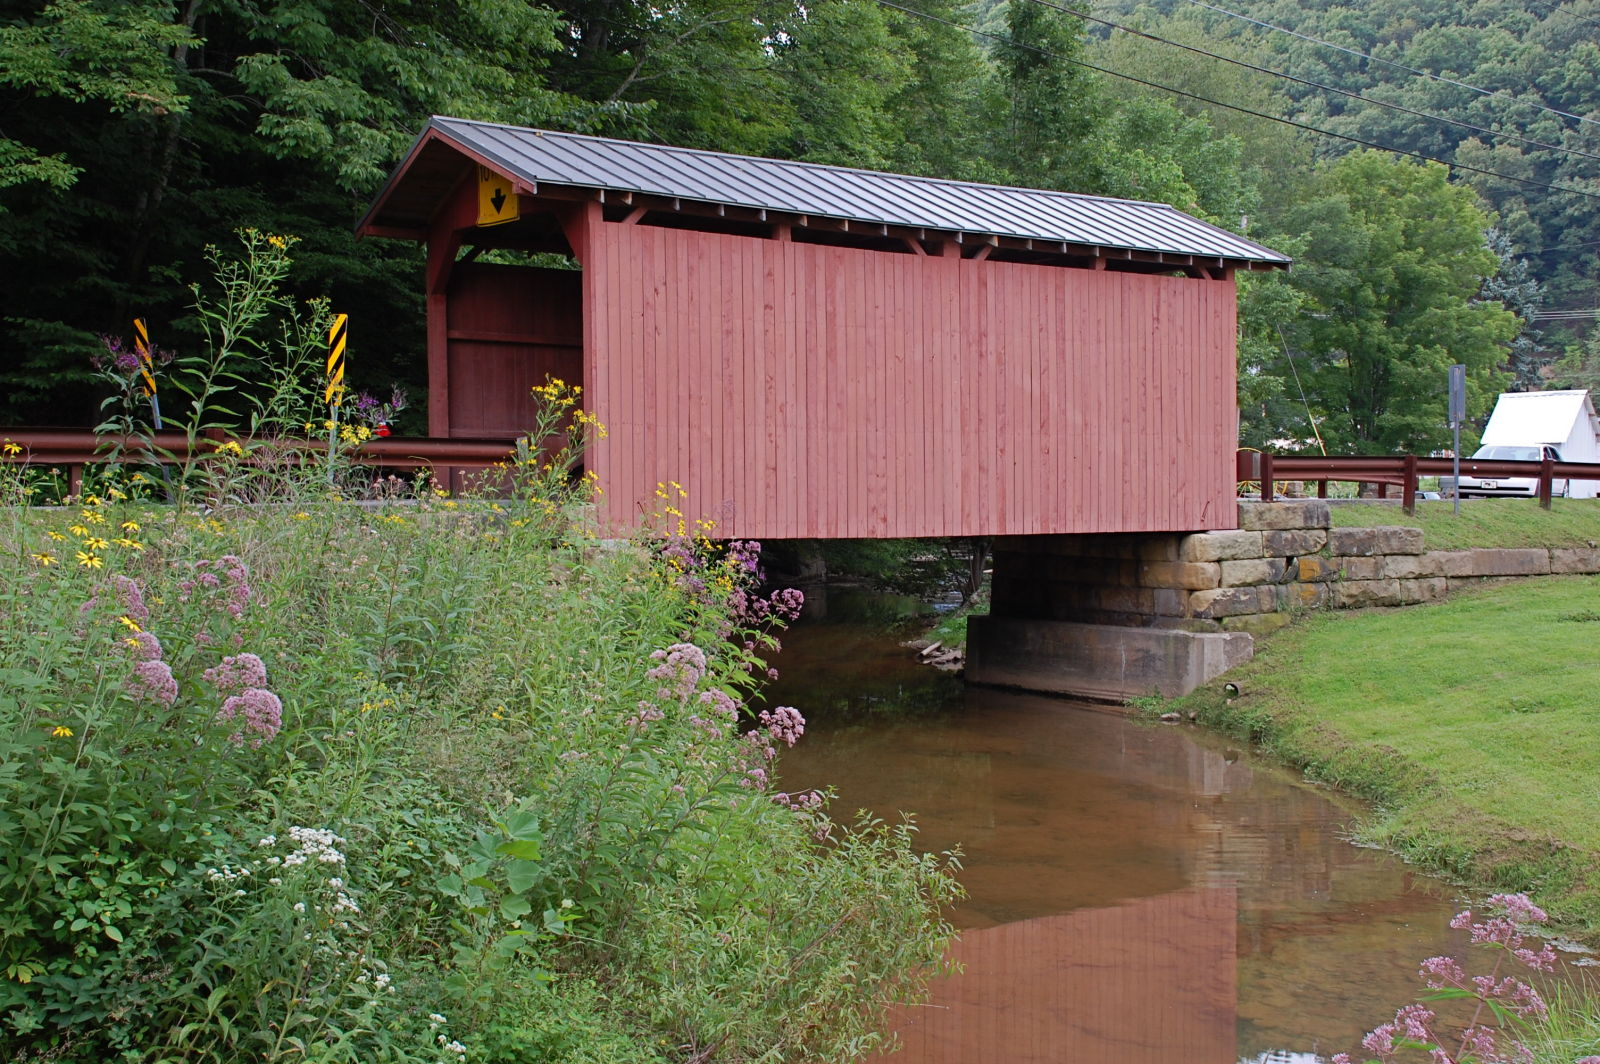 The Fish Creek Covered Bridge in Hundred.